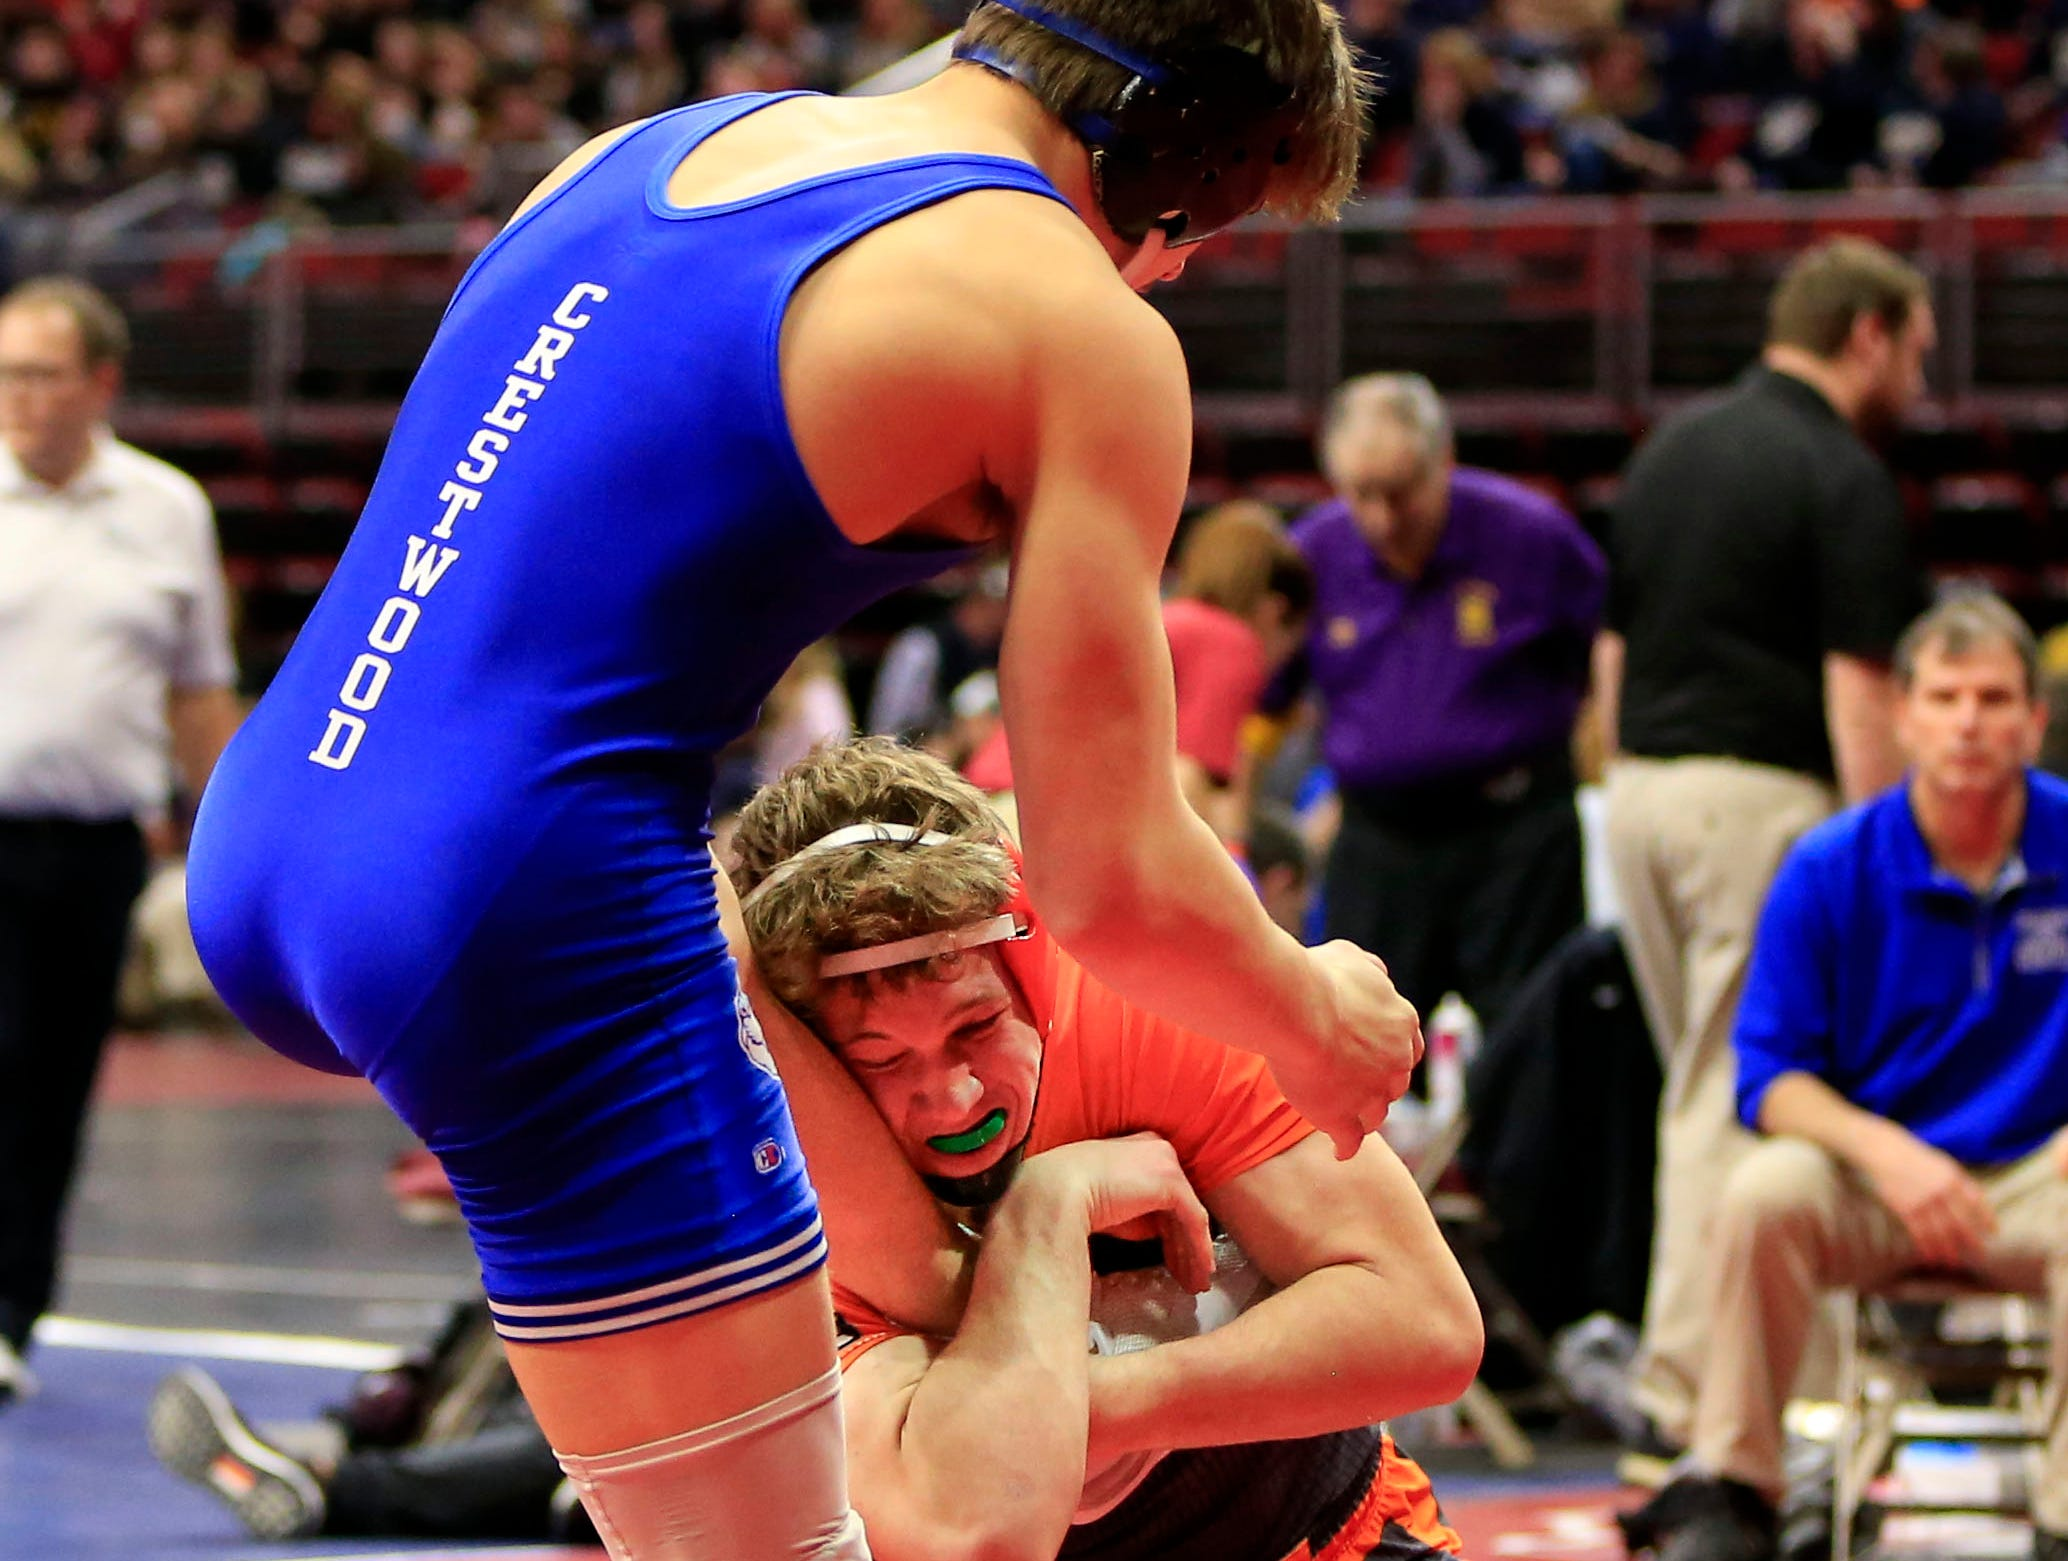 Colter Bye of Crestwood, Cresco defeats Jax Flynn of Solon during a 170 Lb 2A quarterfinal match at the state wrestling tournament Friday, Feb. 15, 2019.